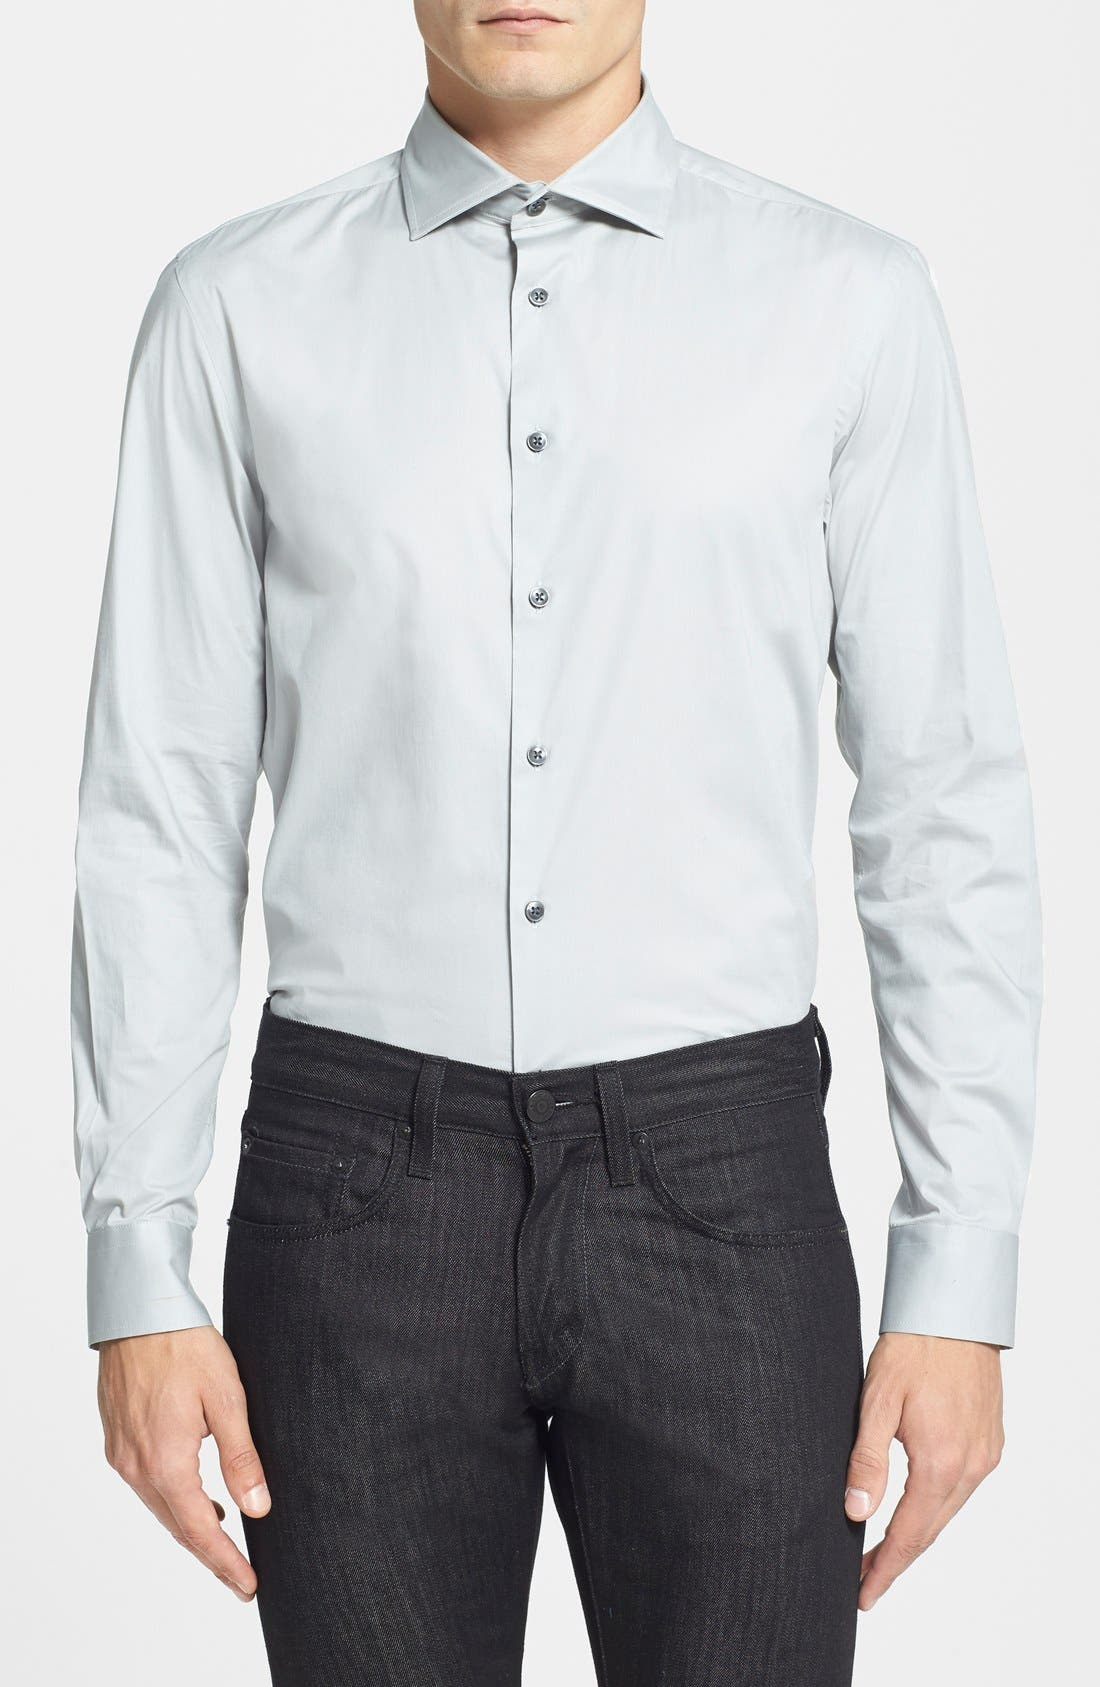 Alternate Image 1 Selected - Kenneth Cole Collection Trim Fit Stretch Woven Sport Shirt